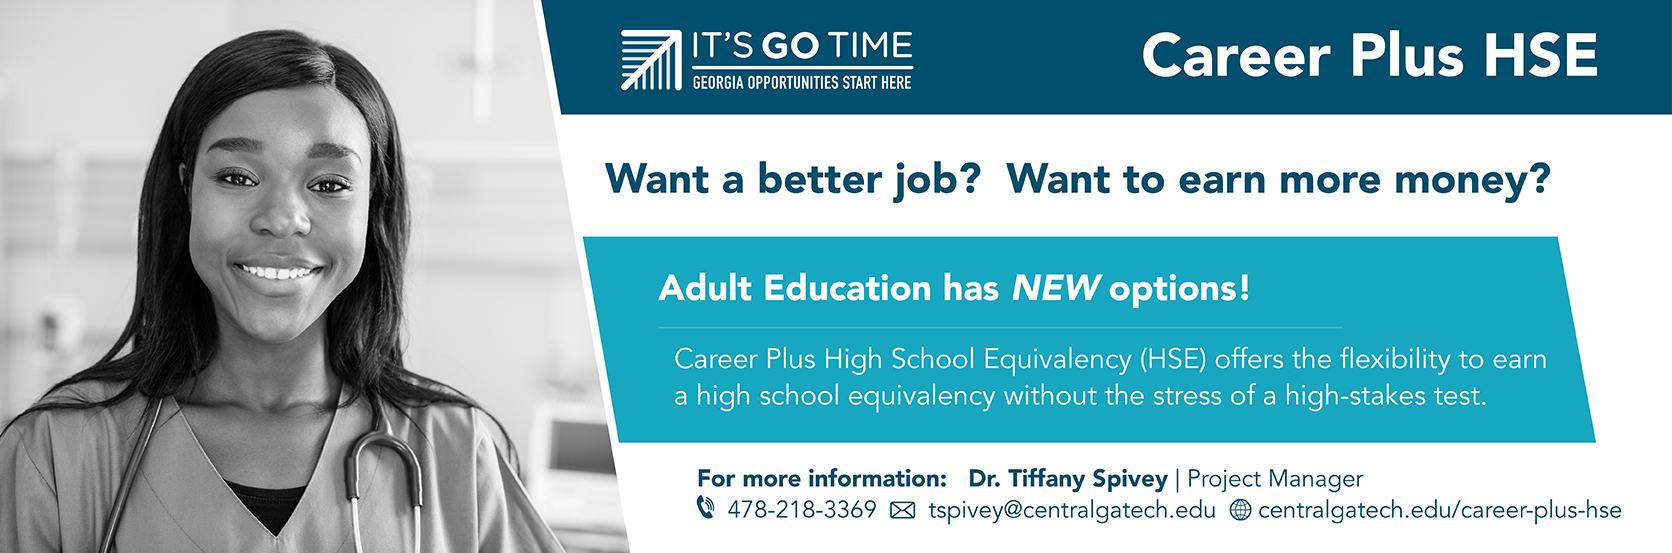 New Adult Education options are available. Email Tiffany Spivey at tspivey@centralgatech.edu for details.